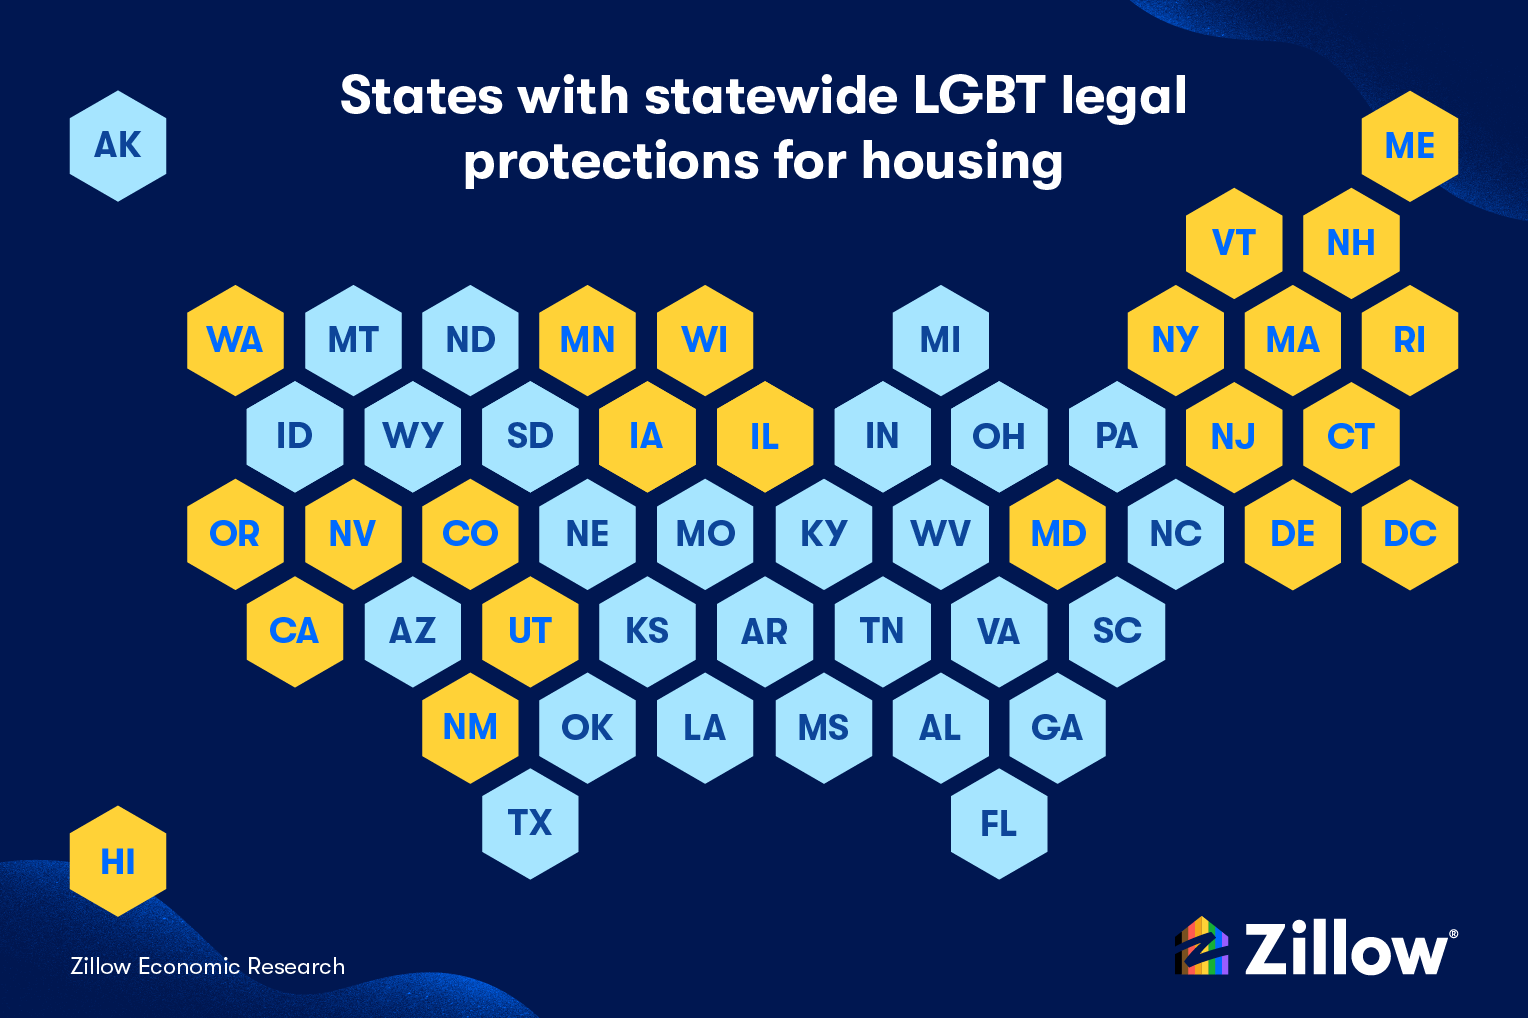 map of the united states that highlights states wtih statewide LGBT legal protections for housing